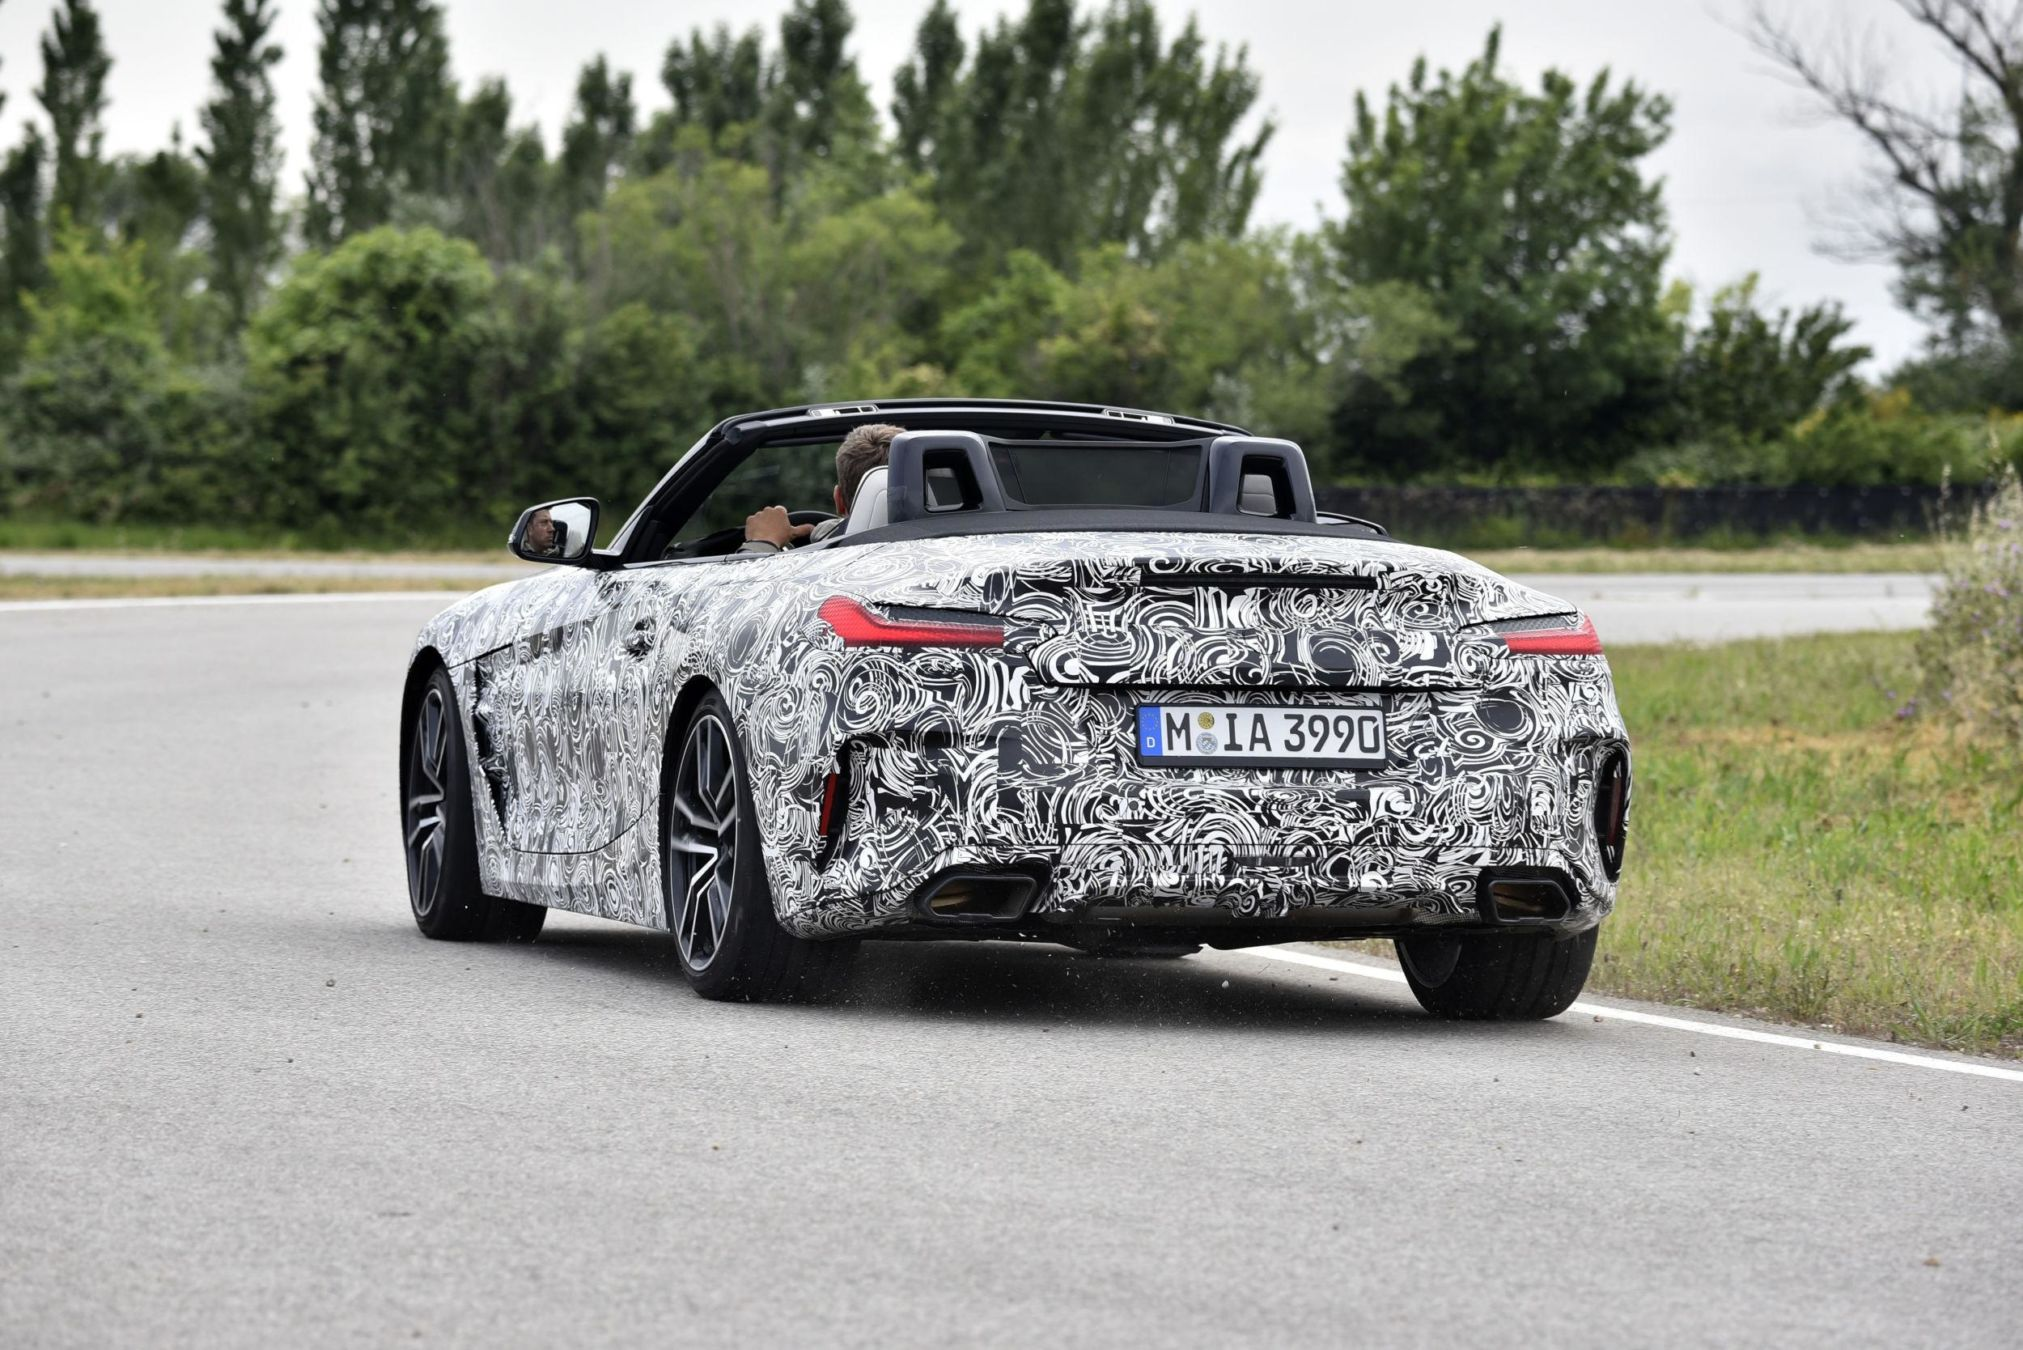 bmw tease sa nouvelle z4 avec des photos du prototype actu. Black Bedroom Furniture Sets. Home Design Ideas